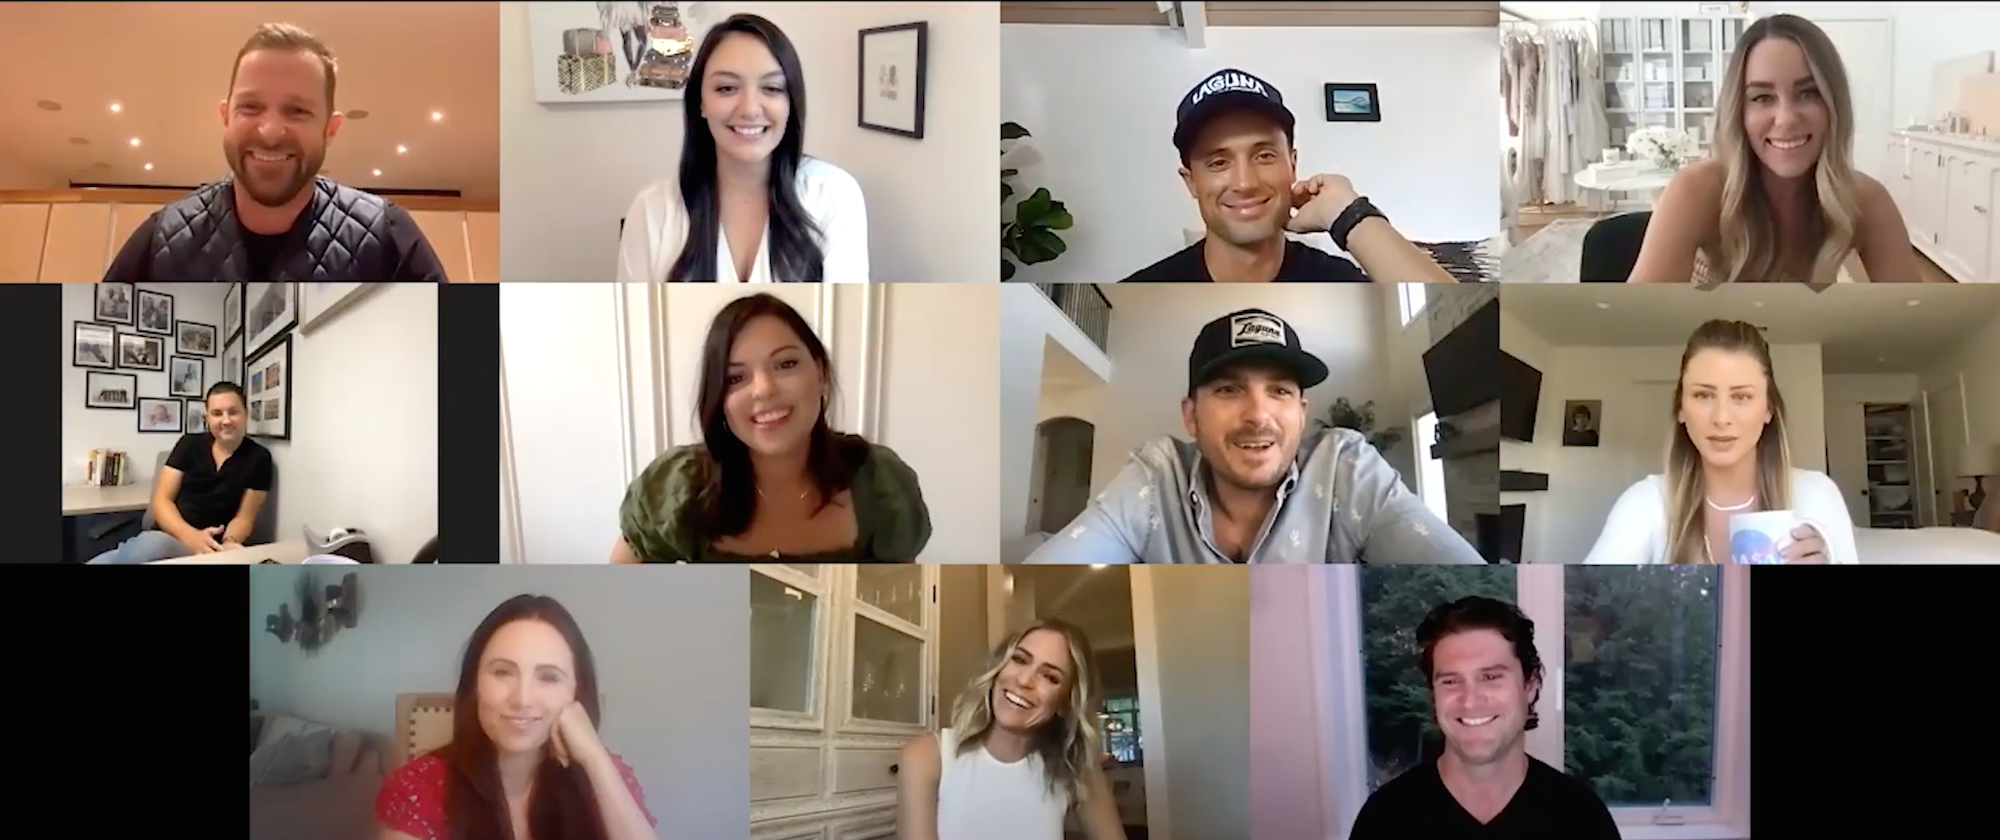 The Laguna Beach Cast Reunited For The First Time In 20 Years And It Was Magical